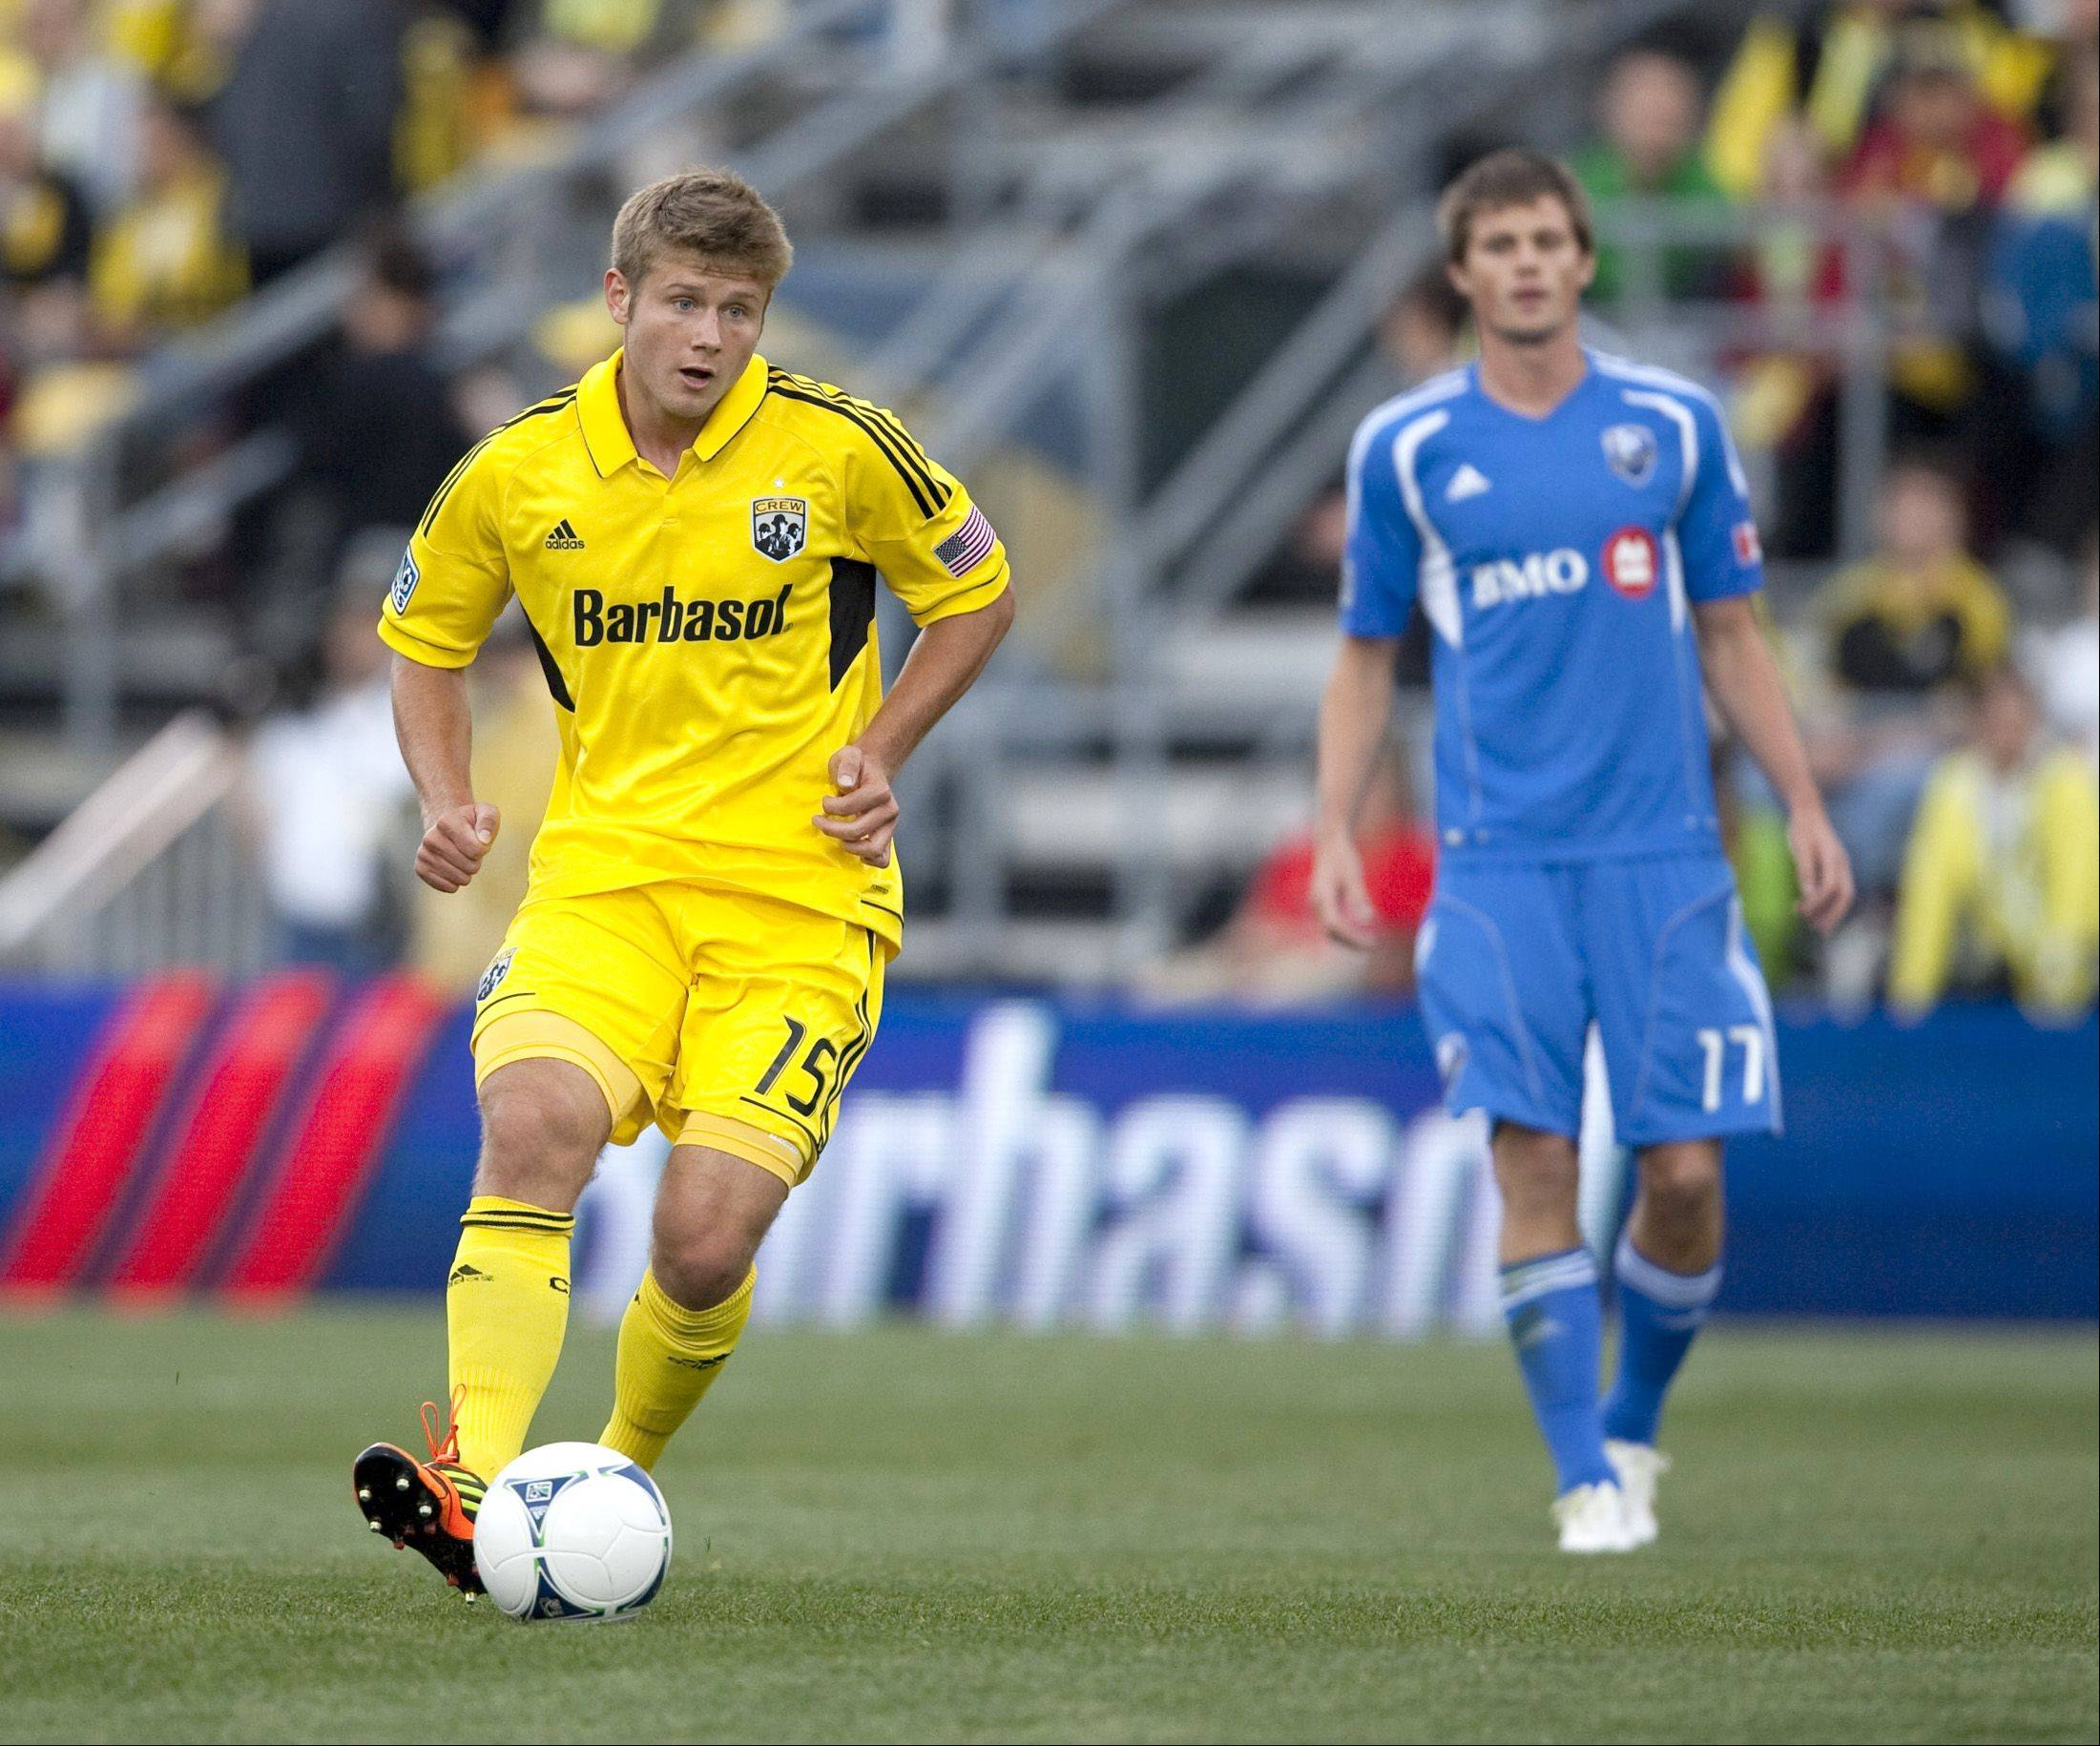 Columbus Crew midfielder Kirk Urso (15) handles the ball against the Montreal Impact for the opening game of the season at Crew Stadium in Columbus on March 24. Urso died Sunday after he was found unconscious in a bar.